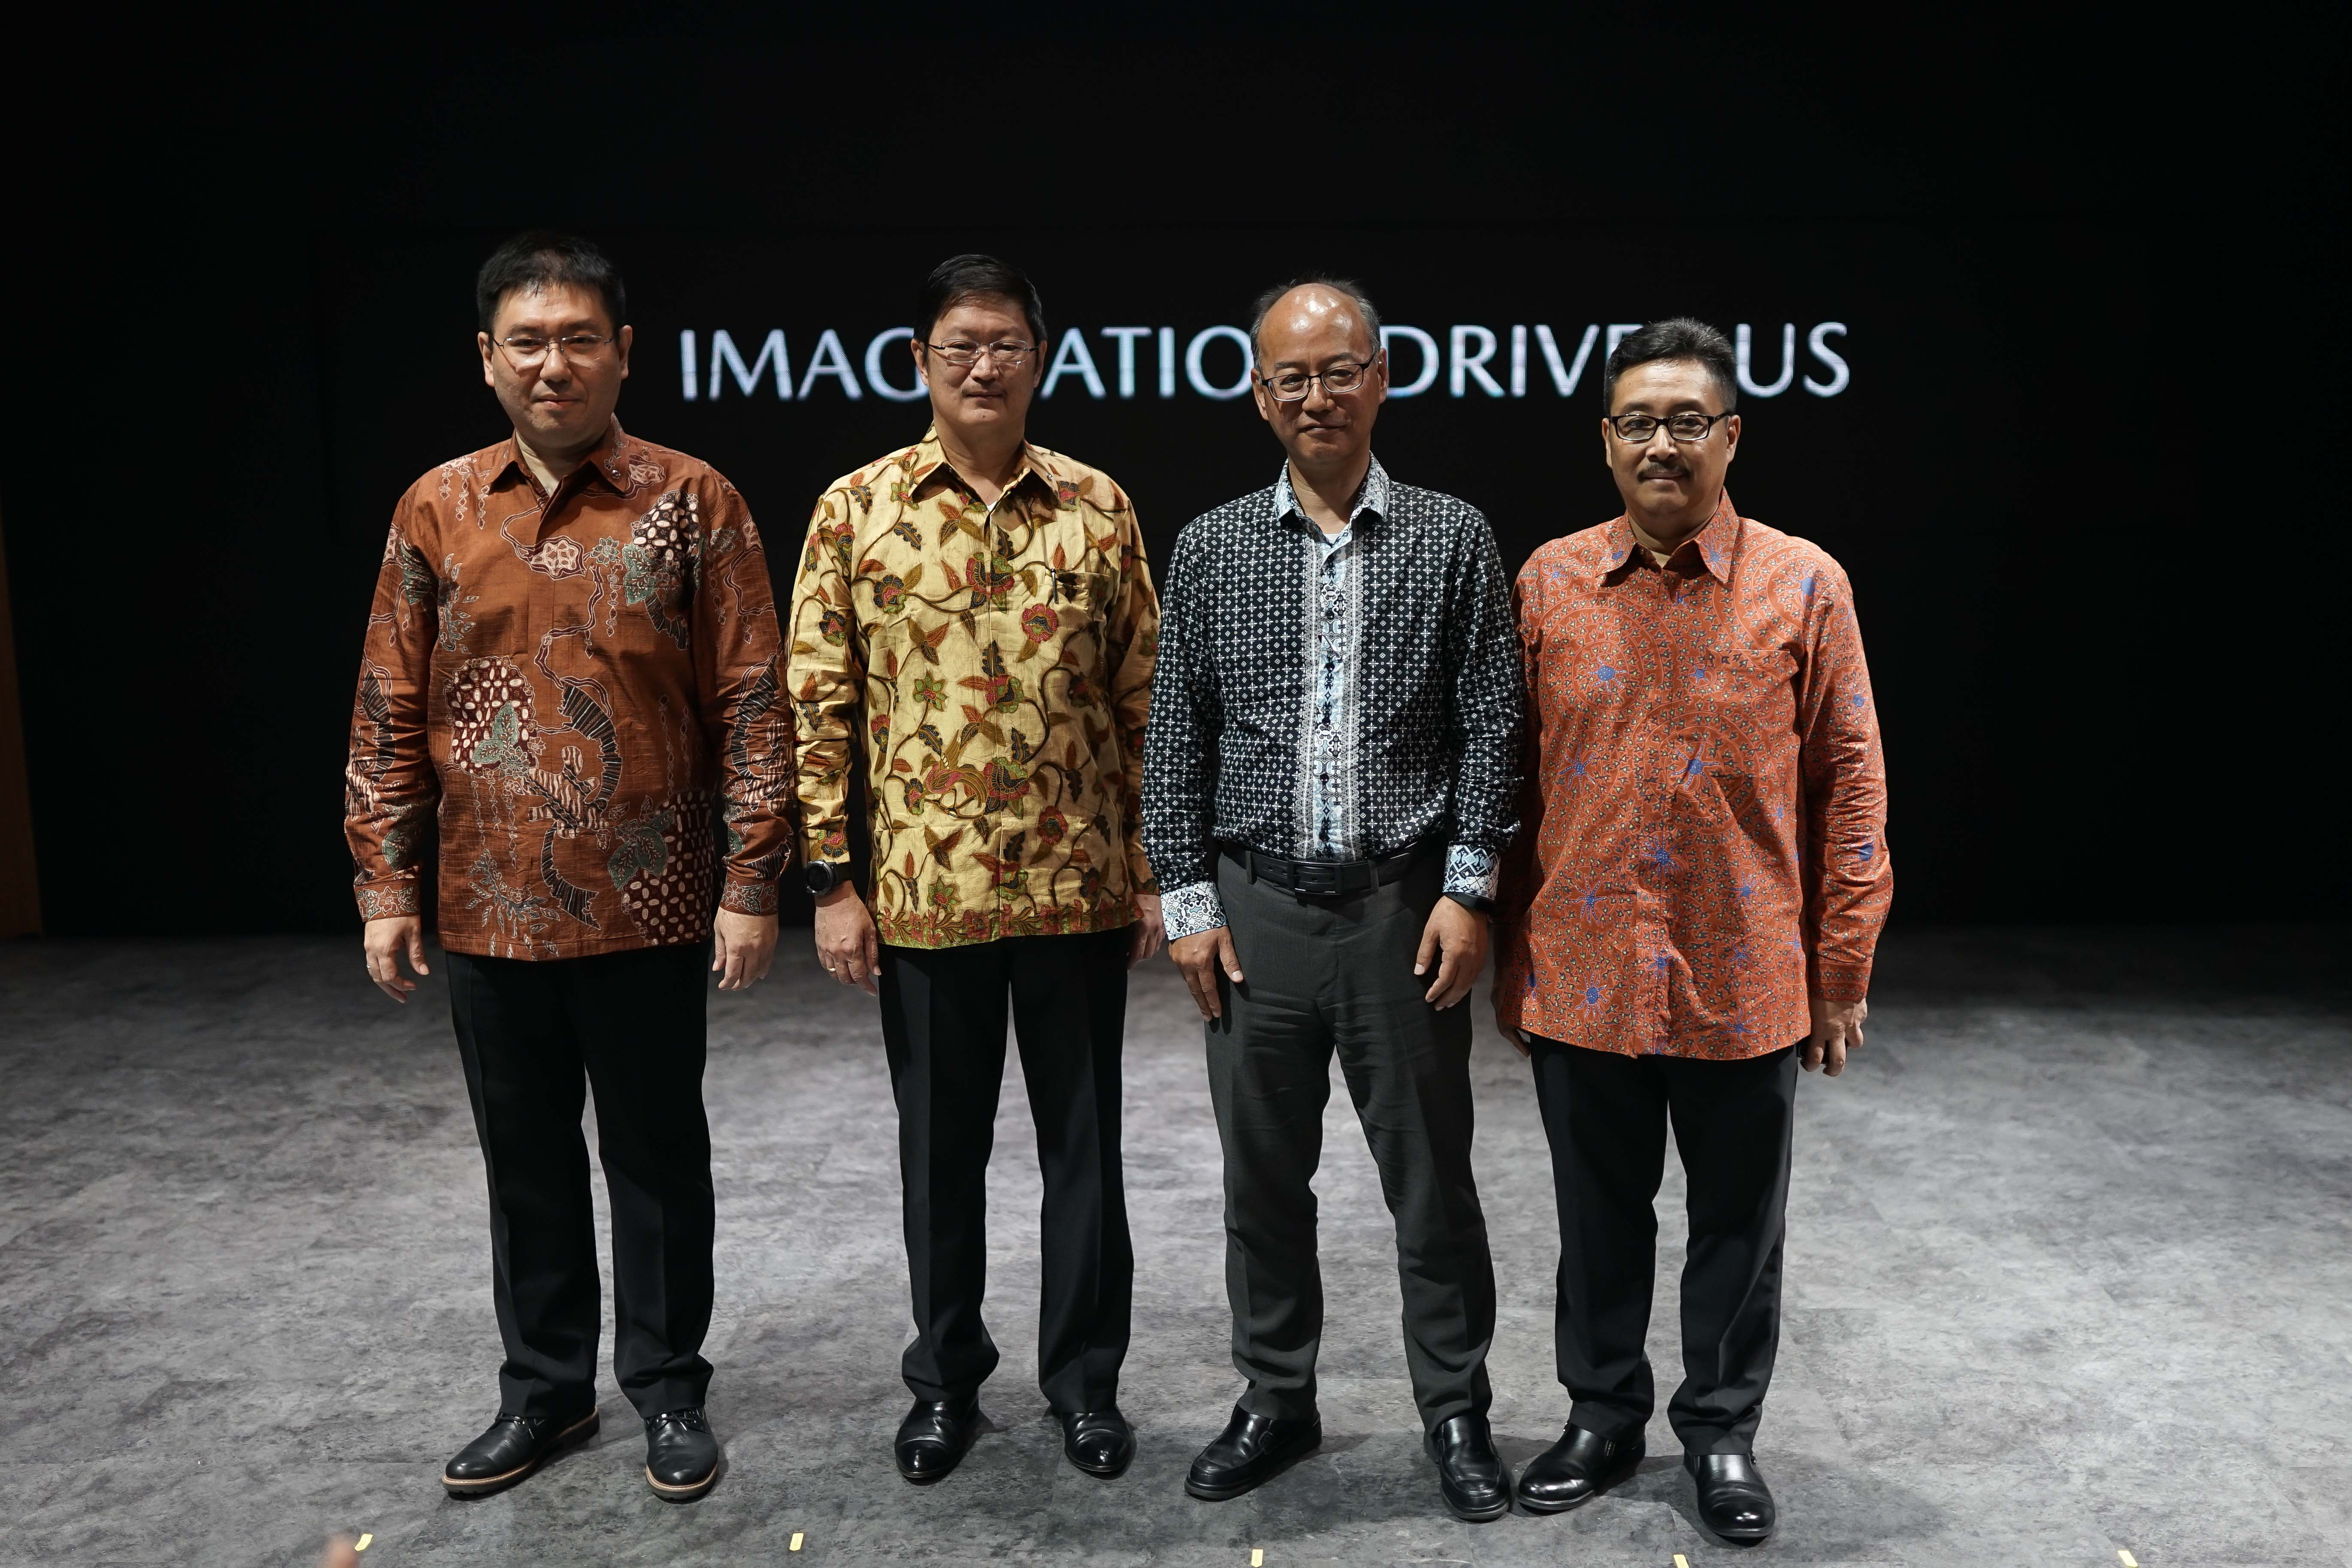 Representatives of PT EMI and Mazda Motor Corporation at the Telkomsel Indonesia International Motor Show 2019 (from left to right): Mr Ricky Thio, Director of Sales, Marketing & PR, PT Eurokars Motor Indonesia; Mr Roy Arman Arfandy, President Director of PT Eurokars Motor Indonesia; Mr Yoshinori Nishihara, Regional Manager, ASEAN Business Office, Mazda Motor Corporation and Mr Igor Panjaitan, Customer Service Director, PT Eurokars Motor Indonesia